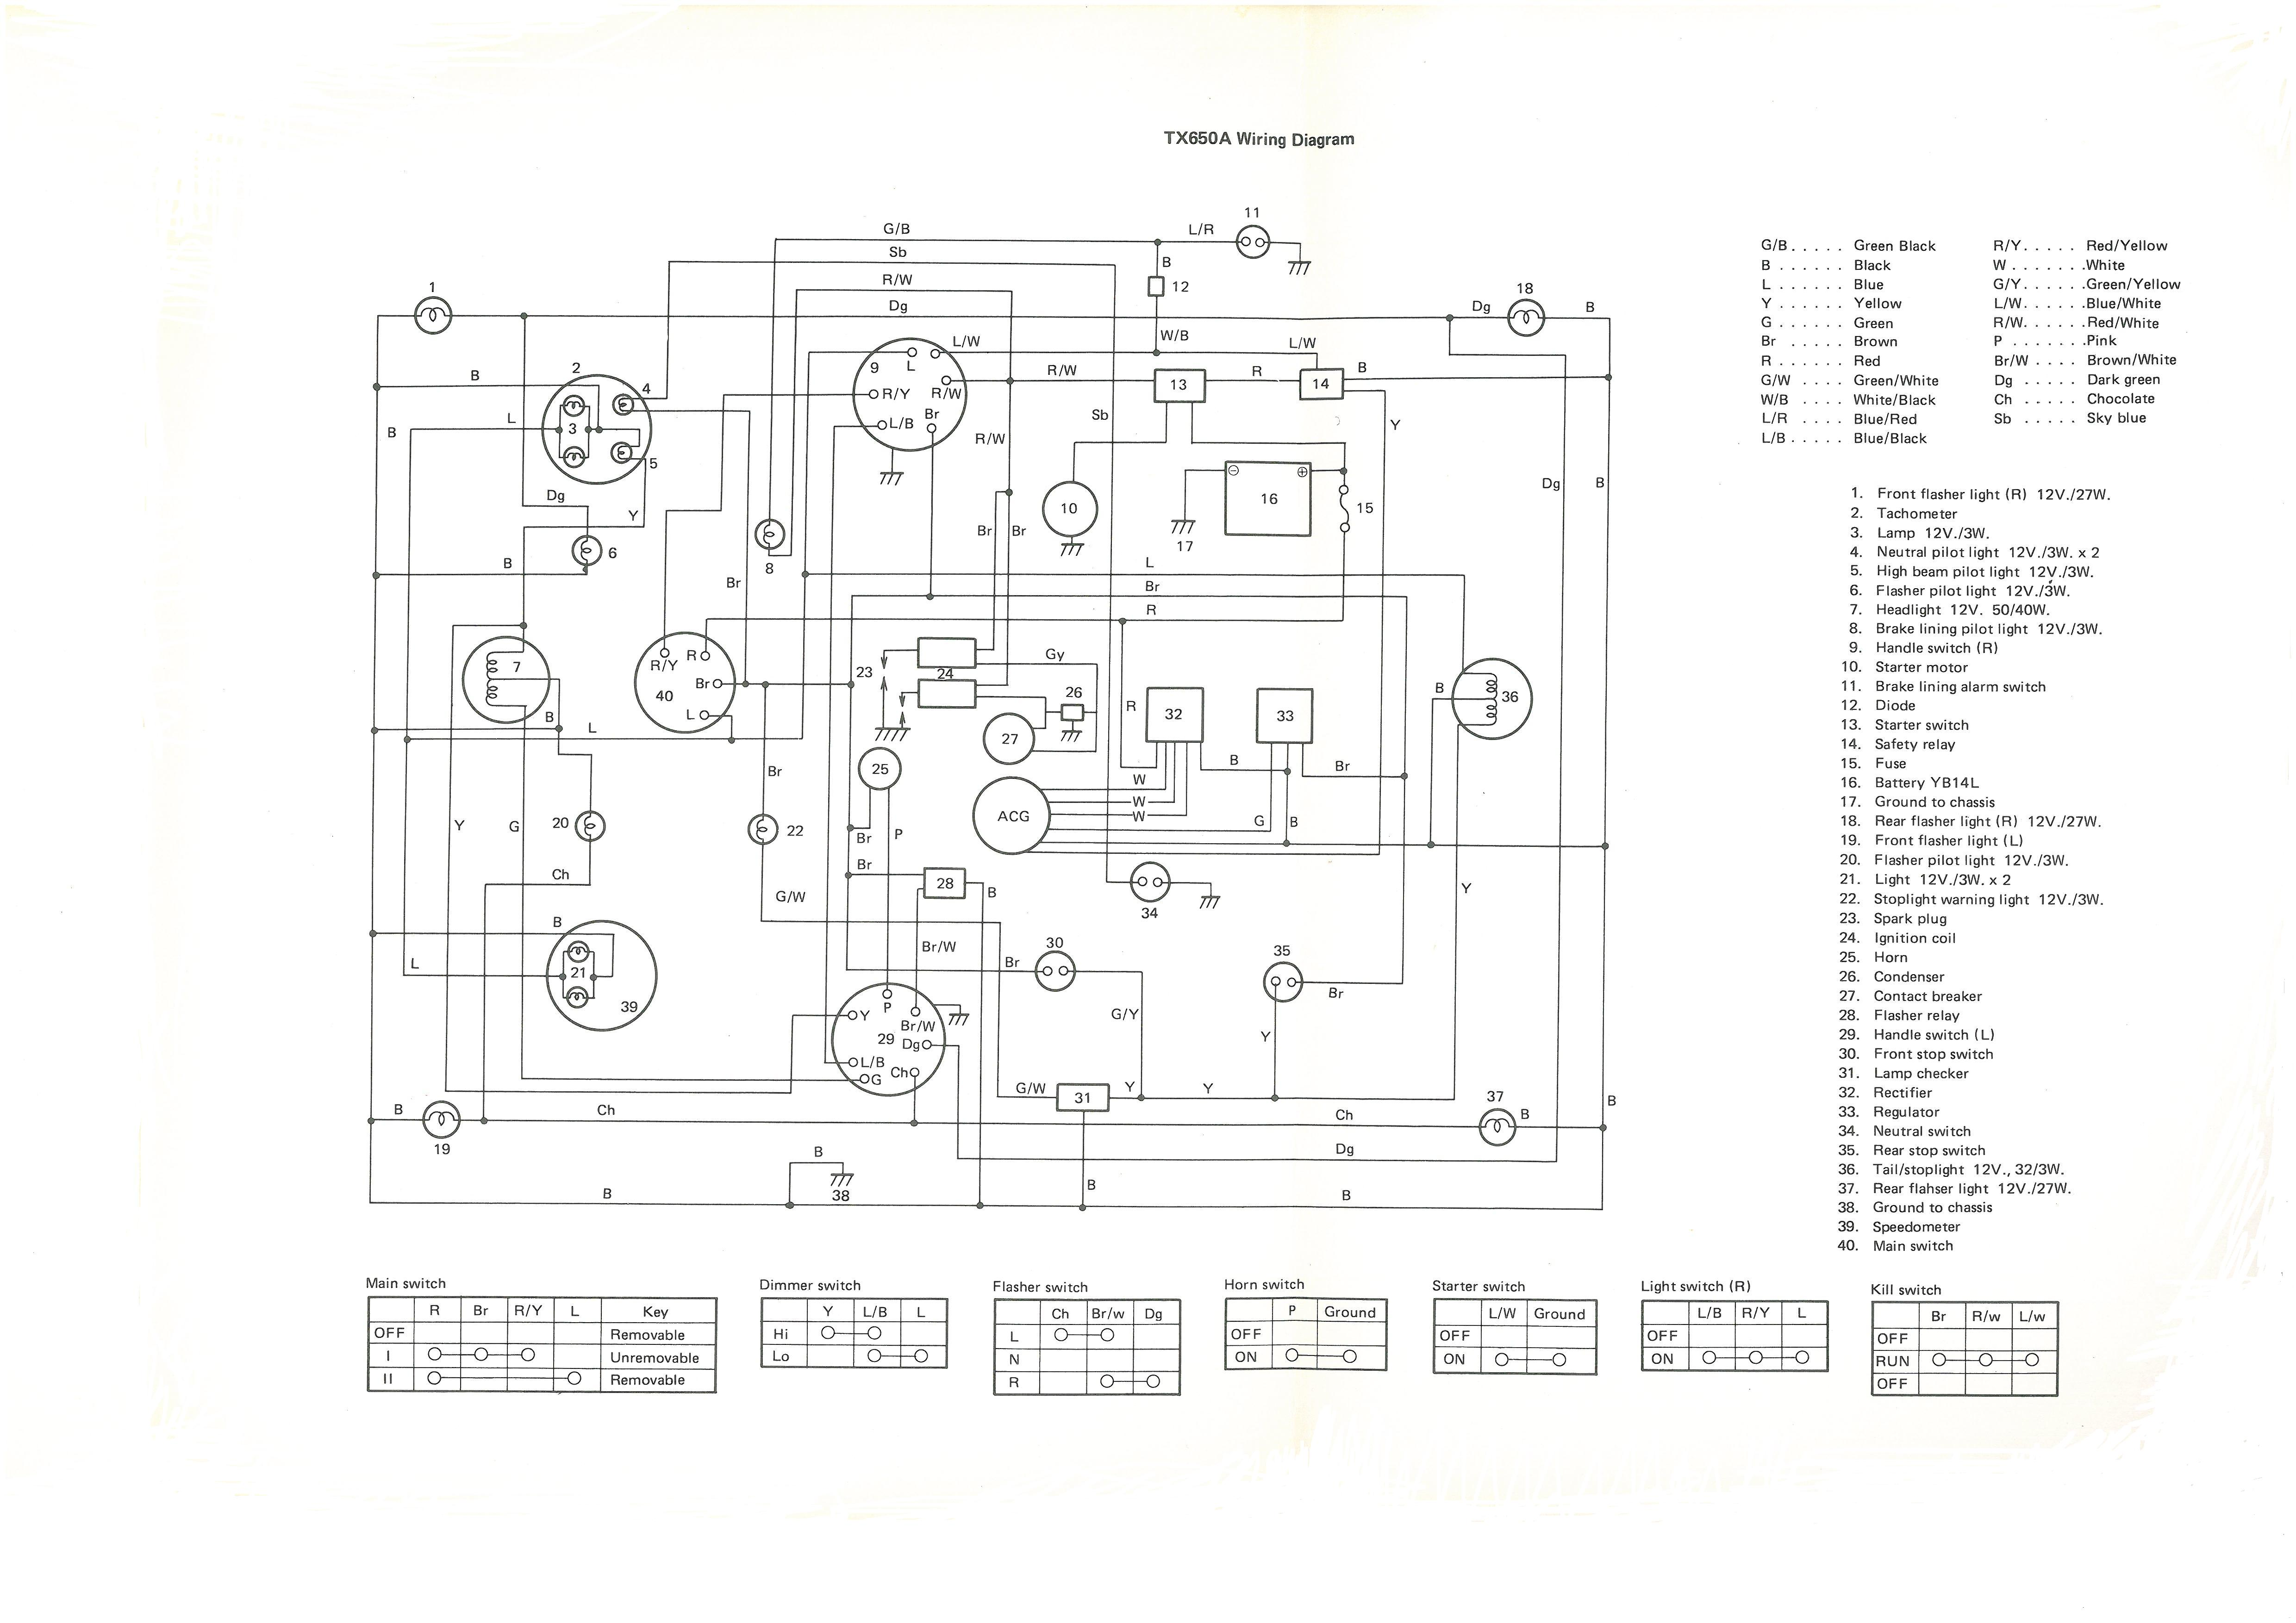 74 tx650a circuit diagram elec diagram thexscafe XS2 Bow String at gsmportal.co